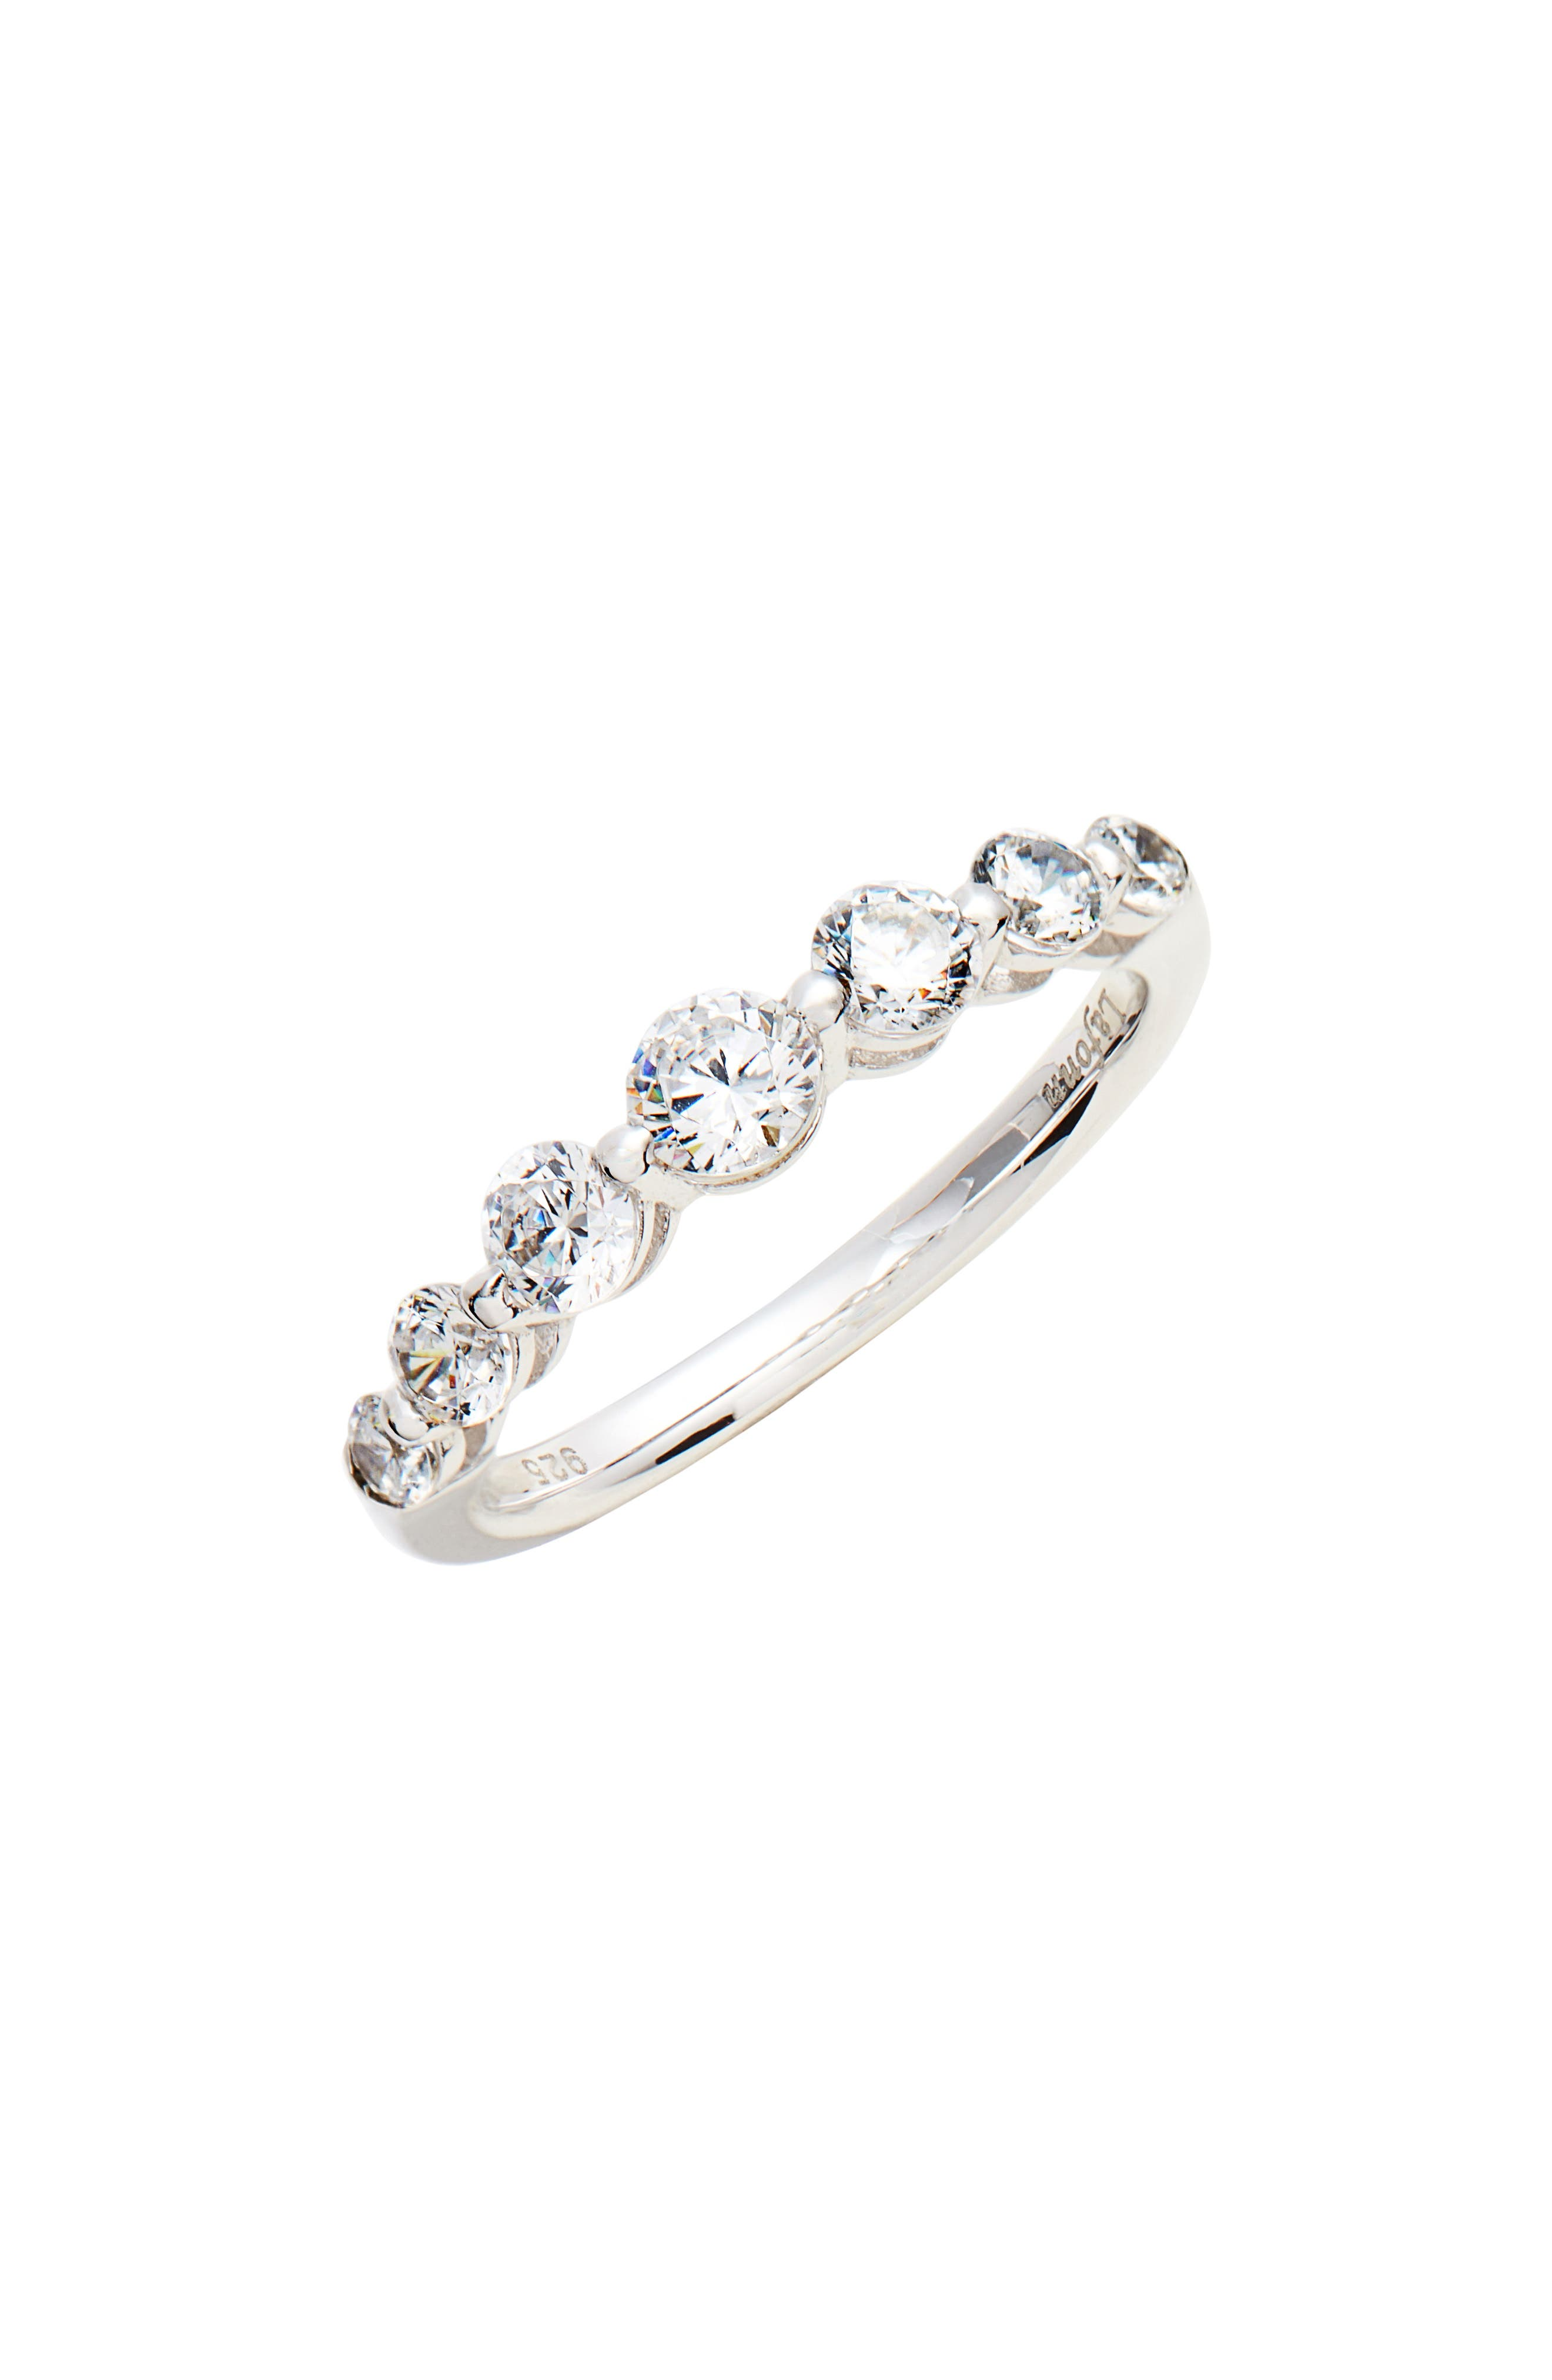 7 Symbols of Joy Ring,                         Main,                         color, Silver/ Clear